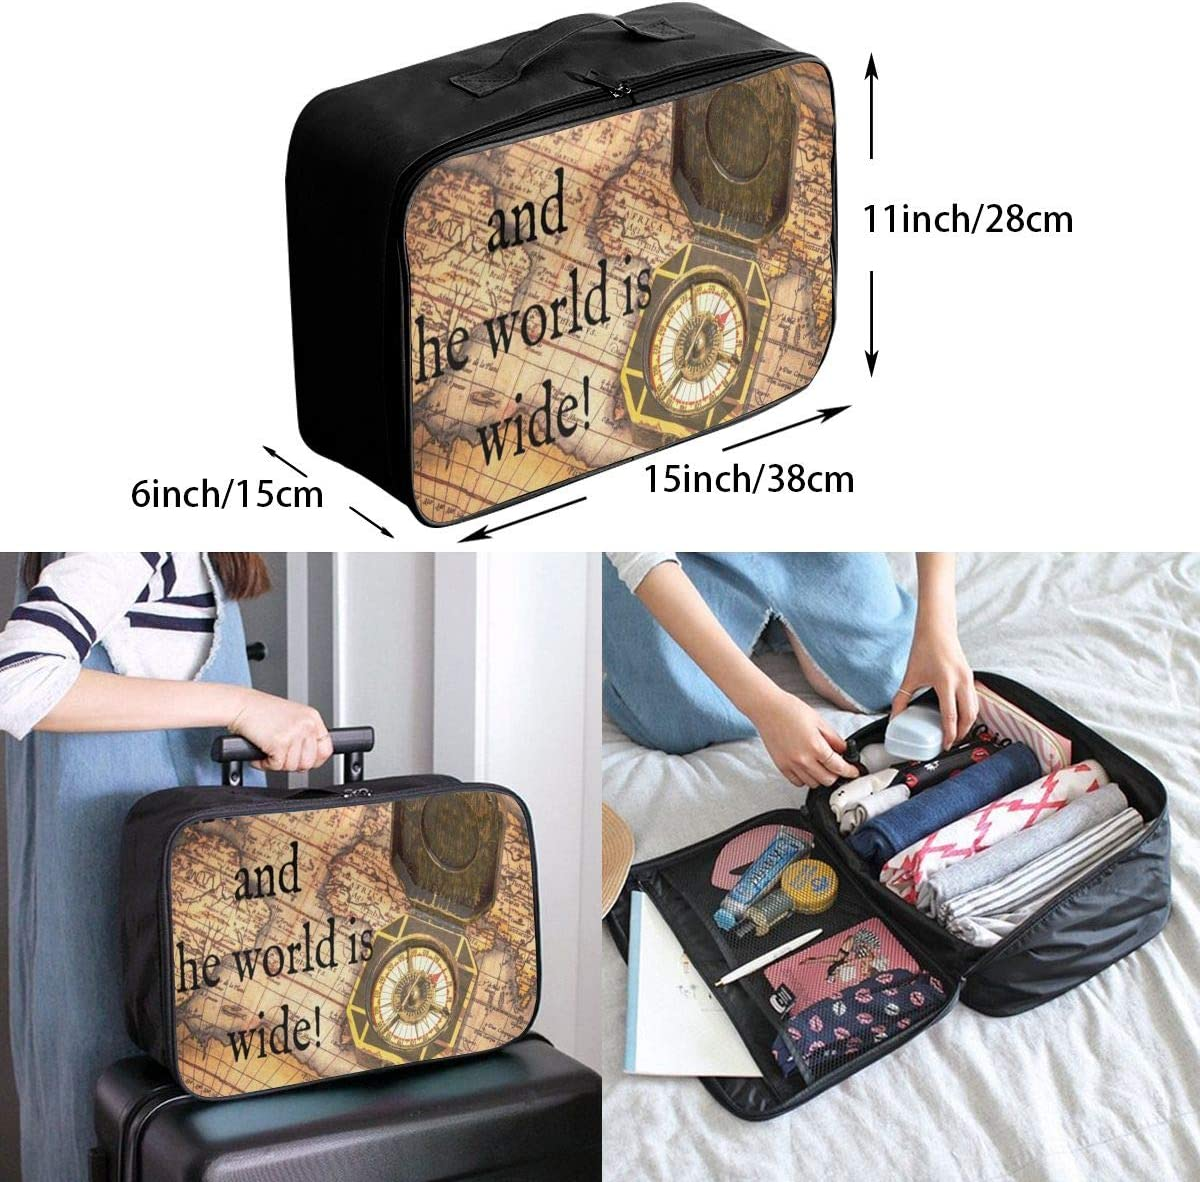 Travel Bags Want To Do Some More Portable Storage Trolley Handle Luggage Bag